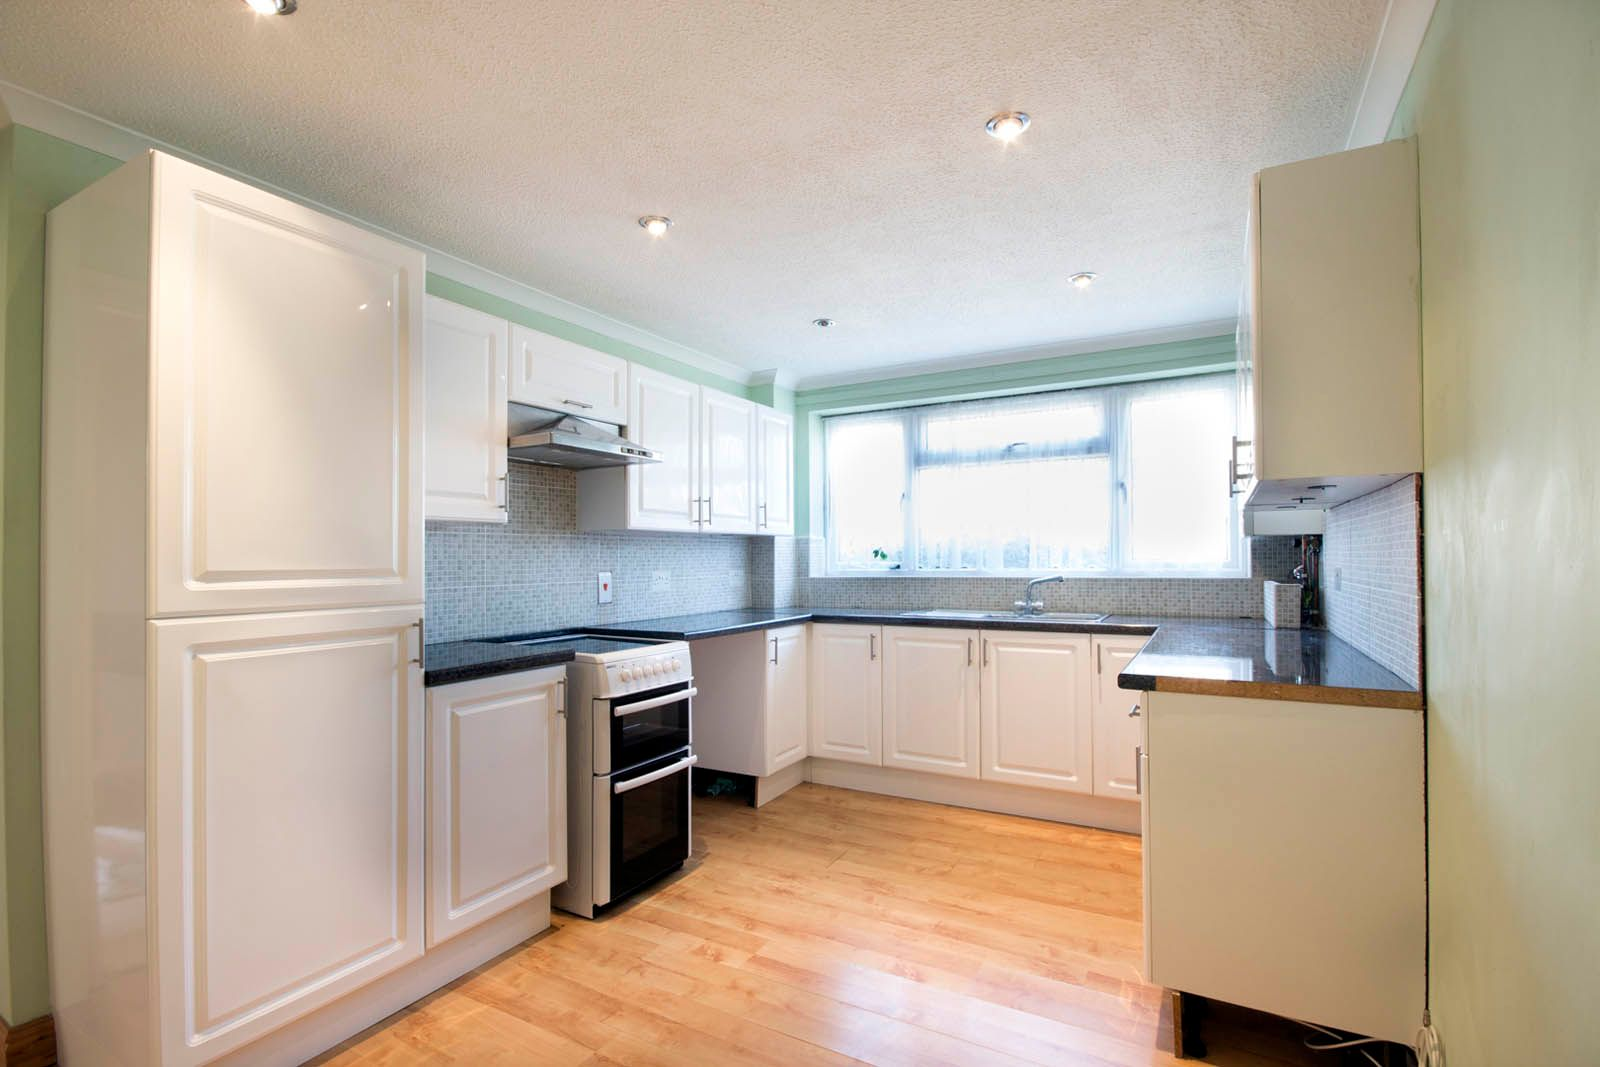 2 bed  for sale in Harsfold Close COMP MAY 2019  - Property Image 2